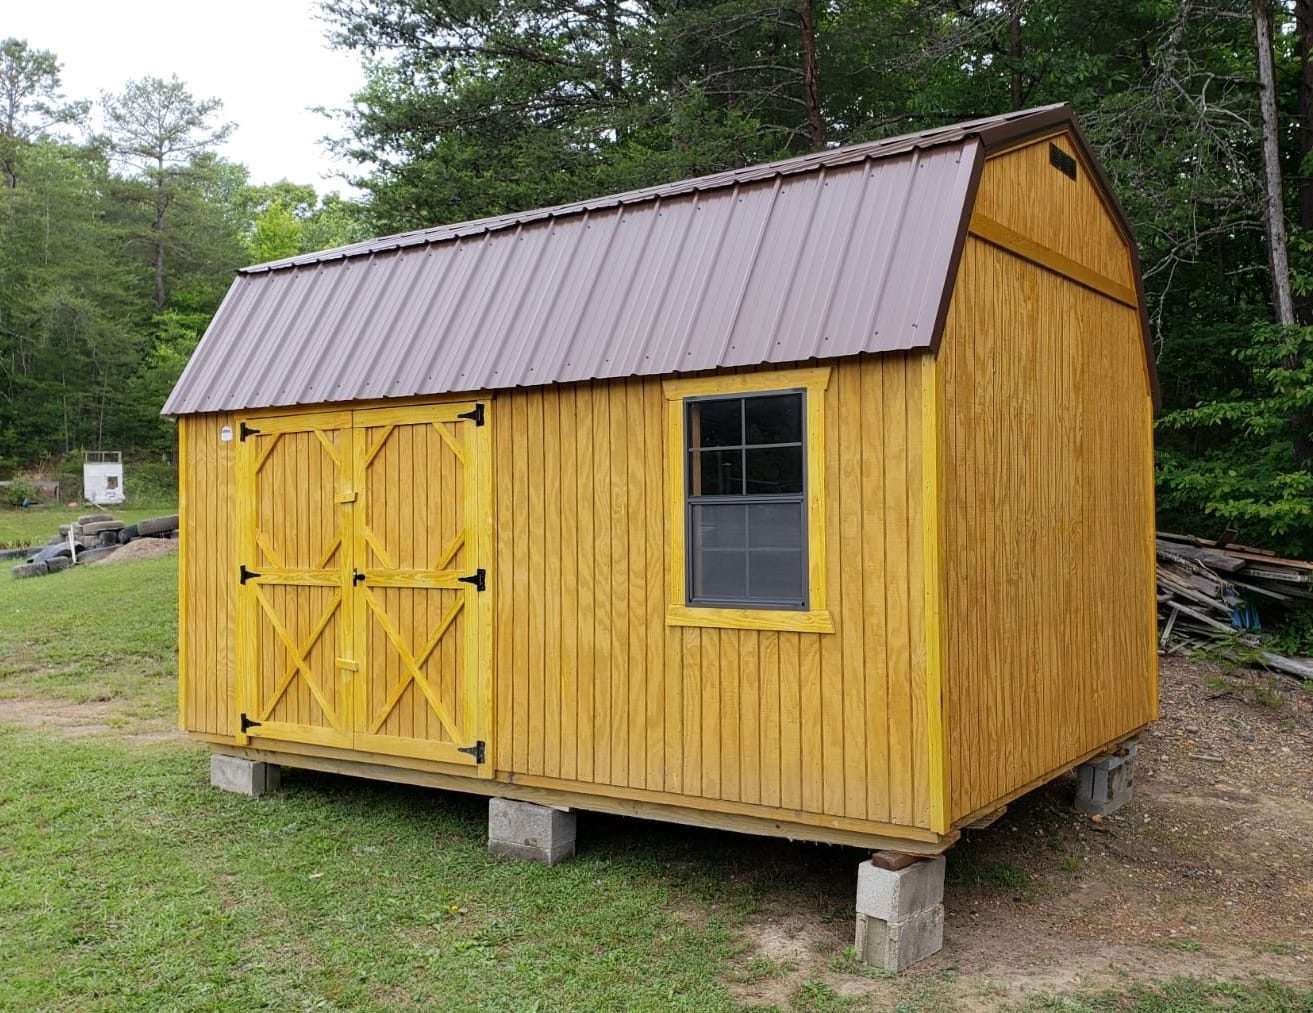 Wooden Storage Sheds For Sale In Va Buy Pressure Treated